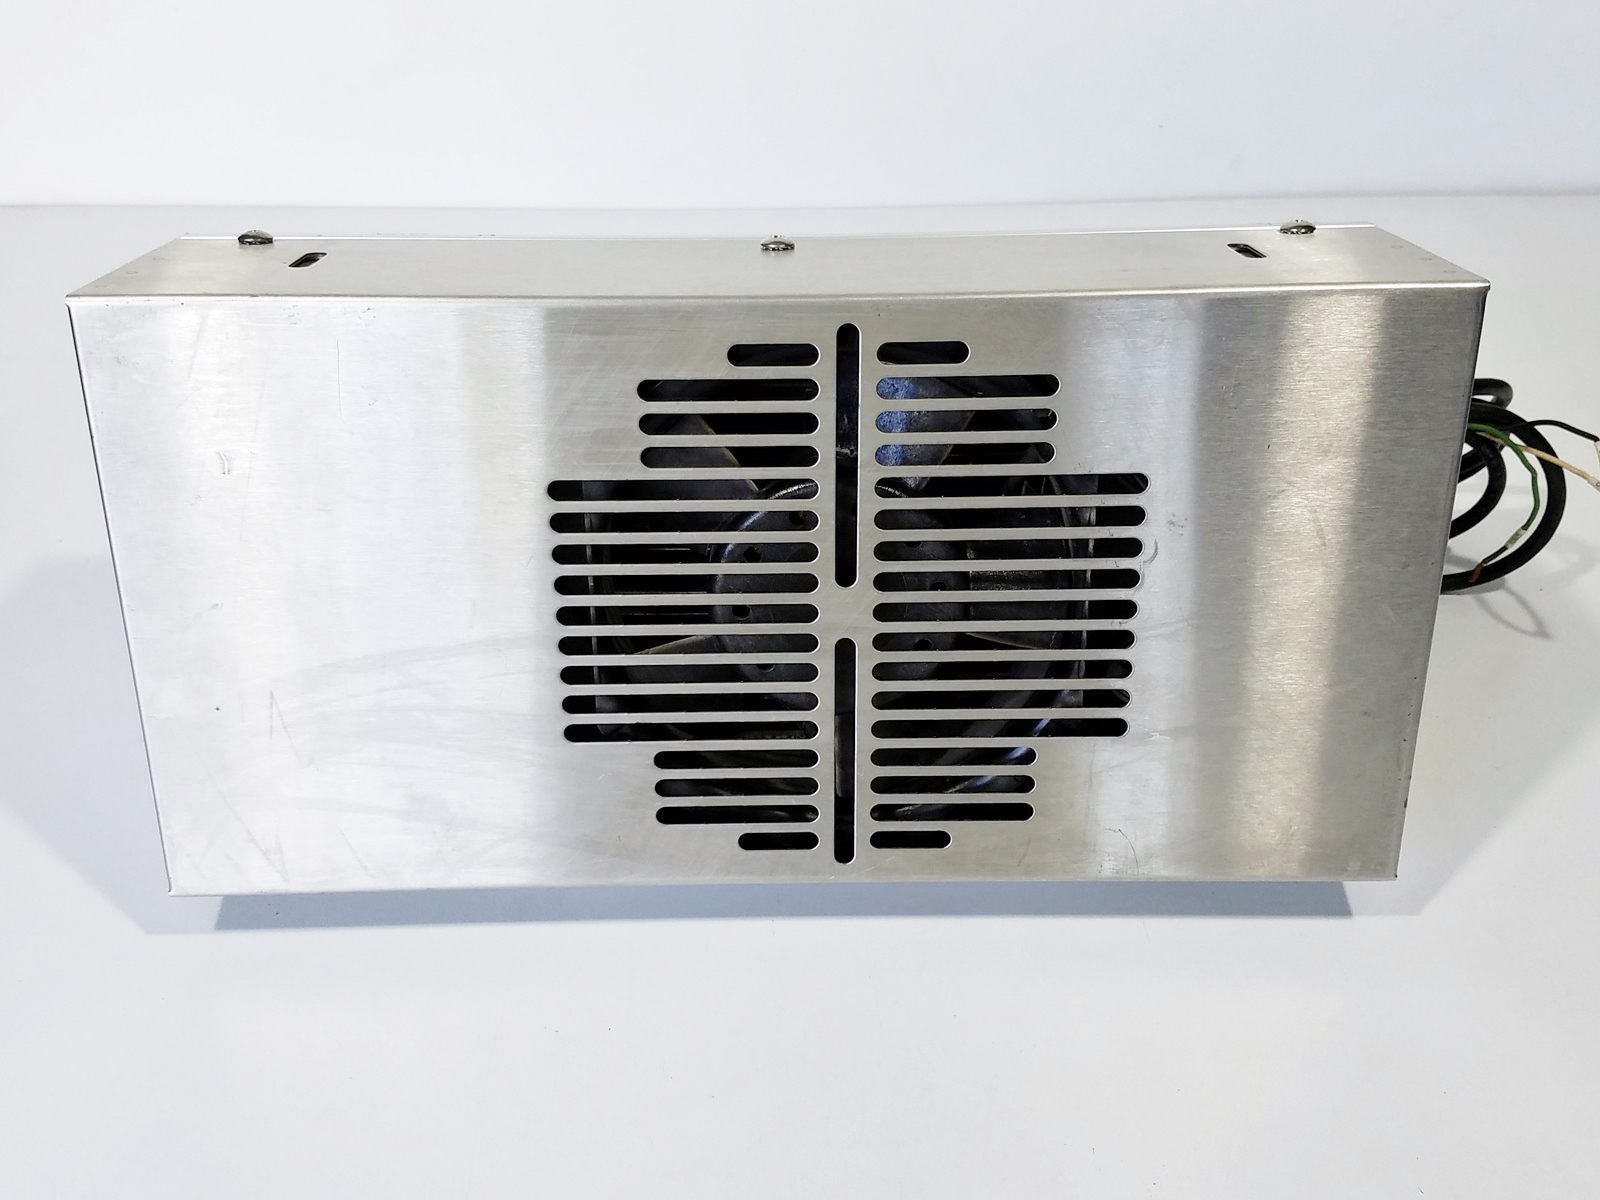 Lot 11 - TECA SOLID STATE A/C UNIT